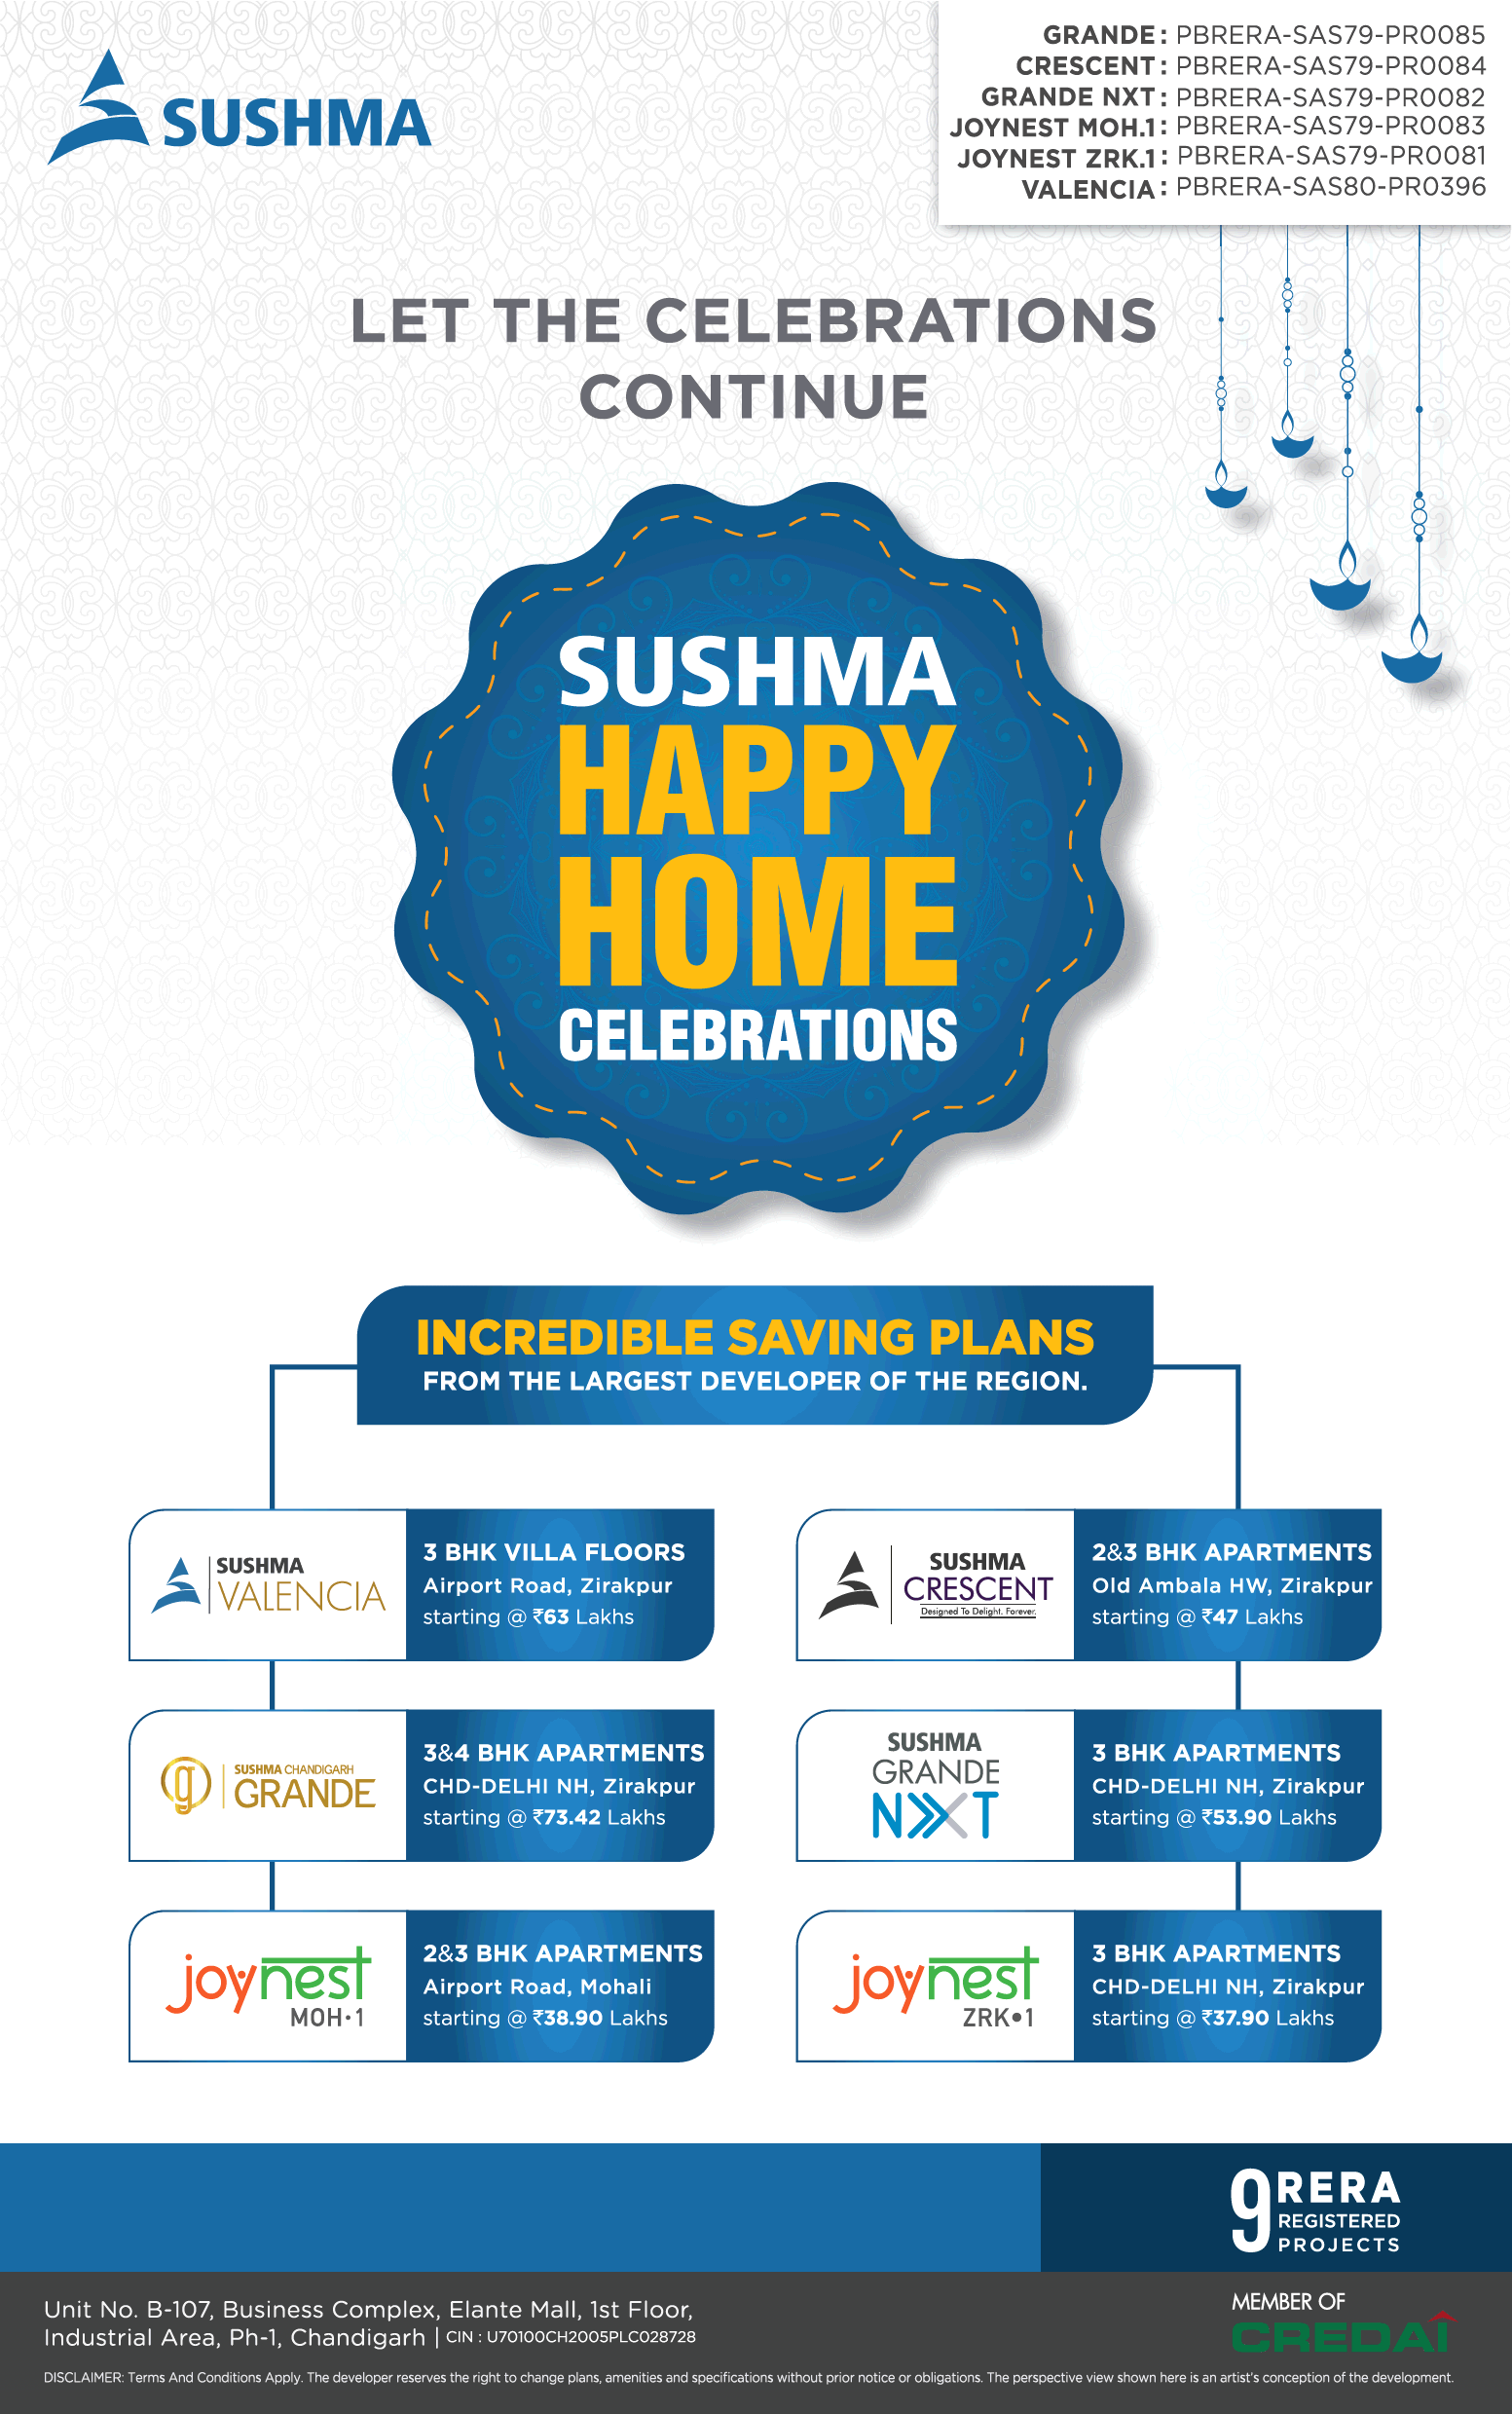 Let the celebrations continue at Sushma Buildtech in Chandigarh